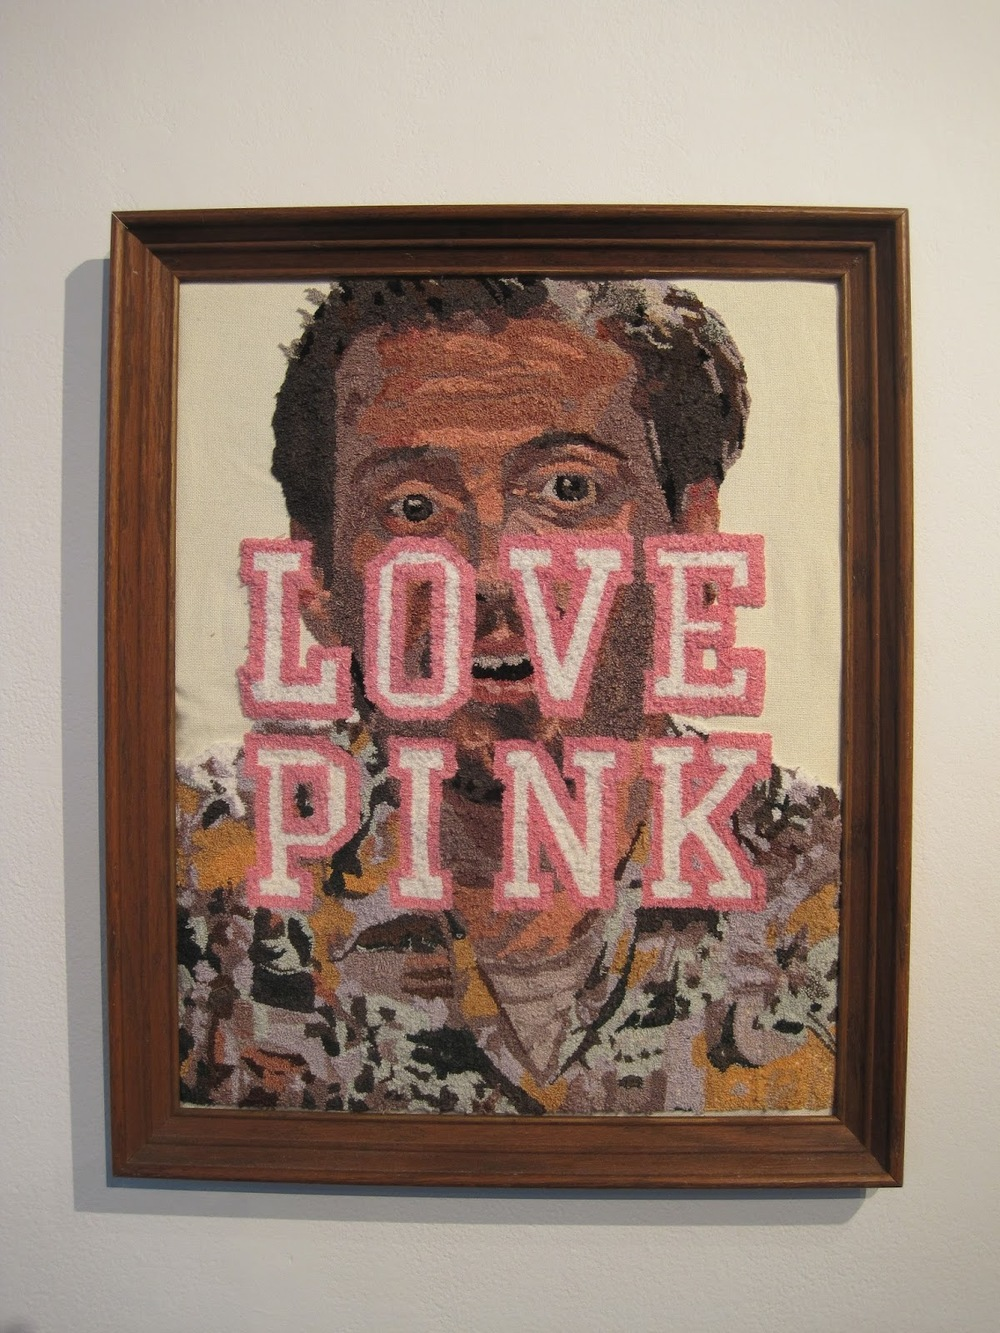 Mr. Pink, Sounds Like Mr. Pussy   punch needle technique with embroidery floss on fabric  2012